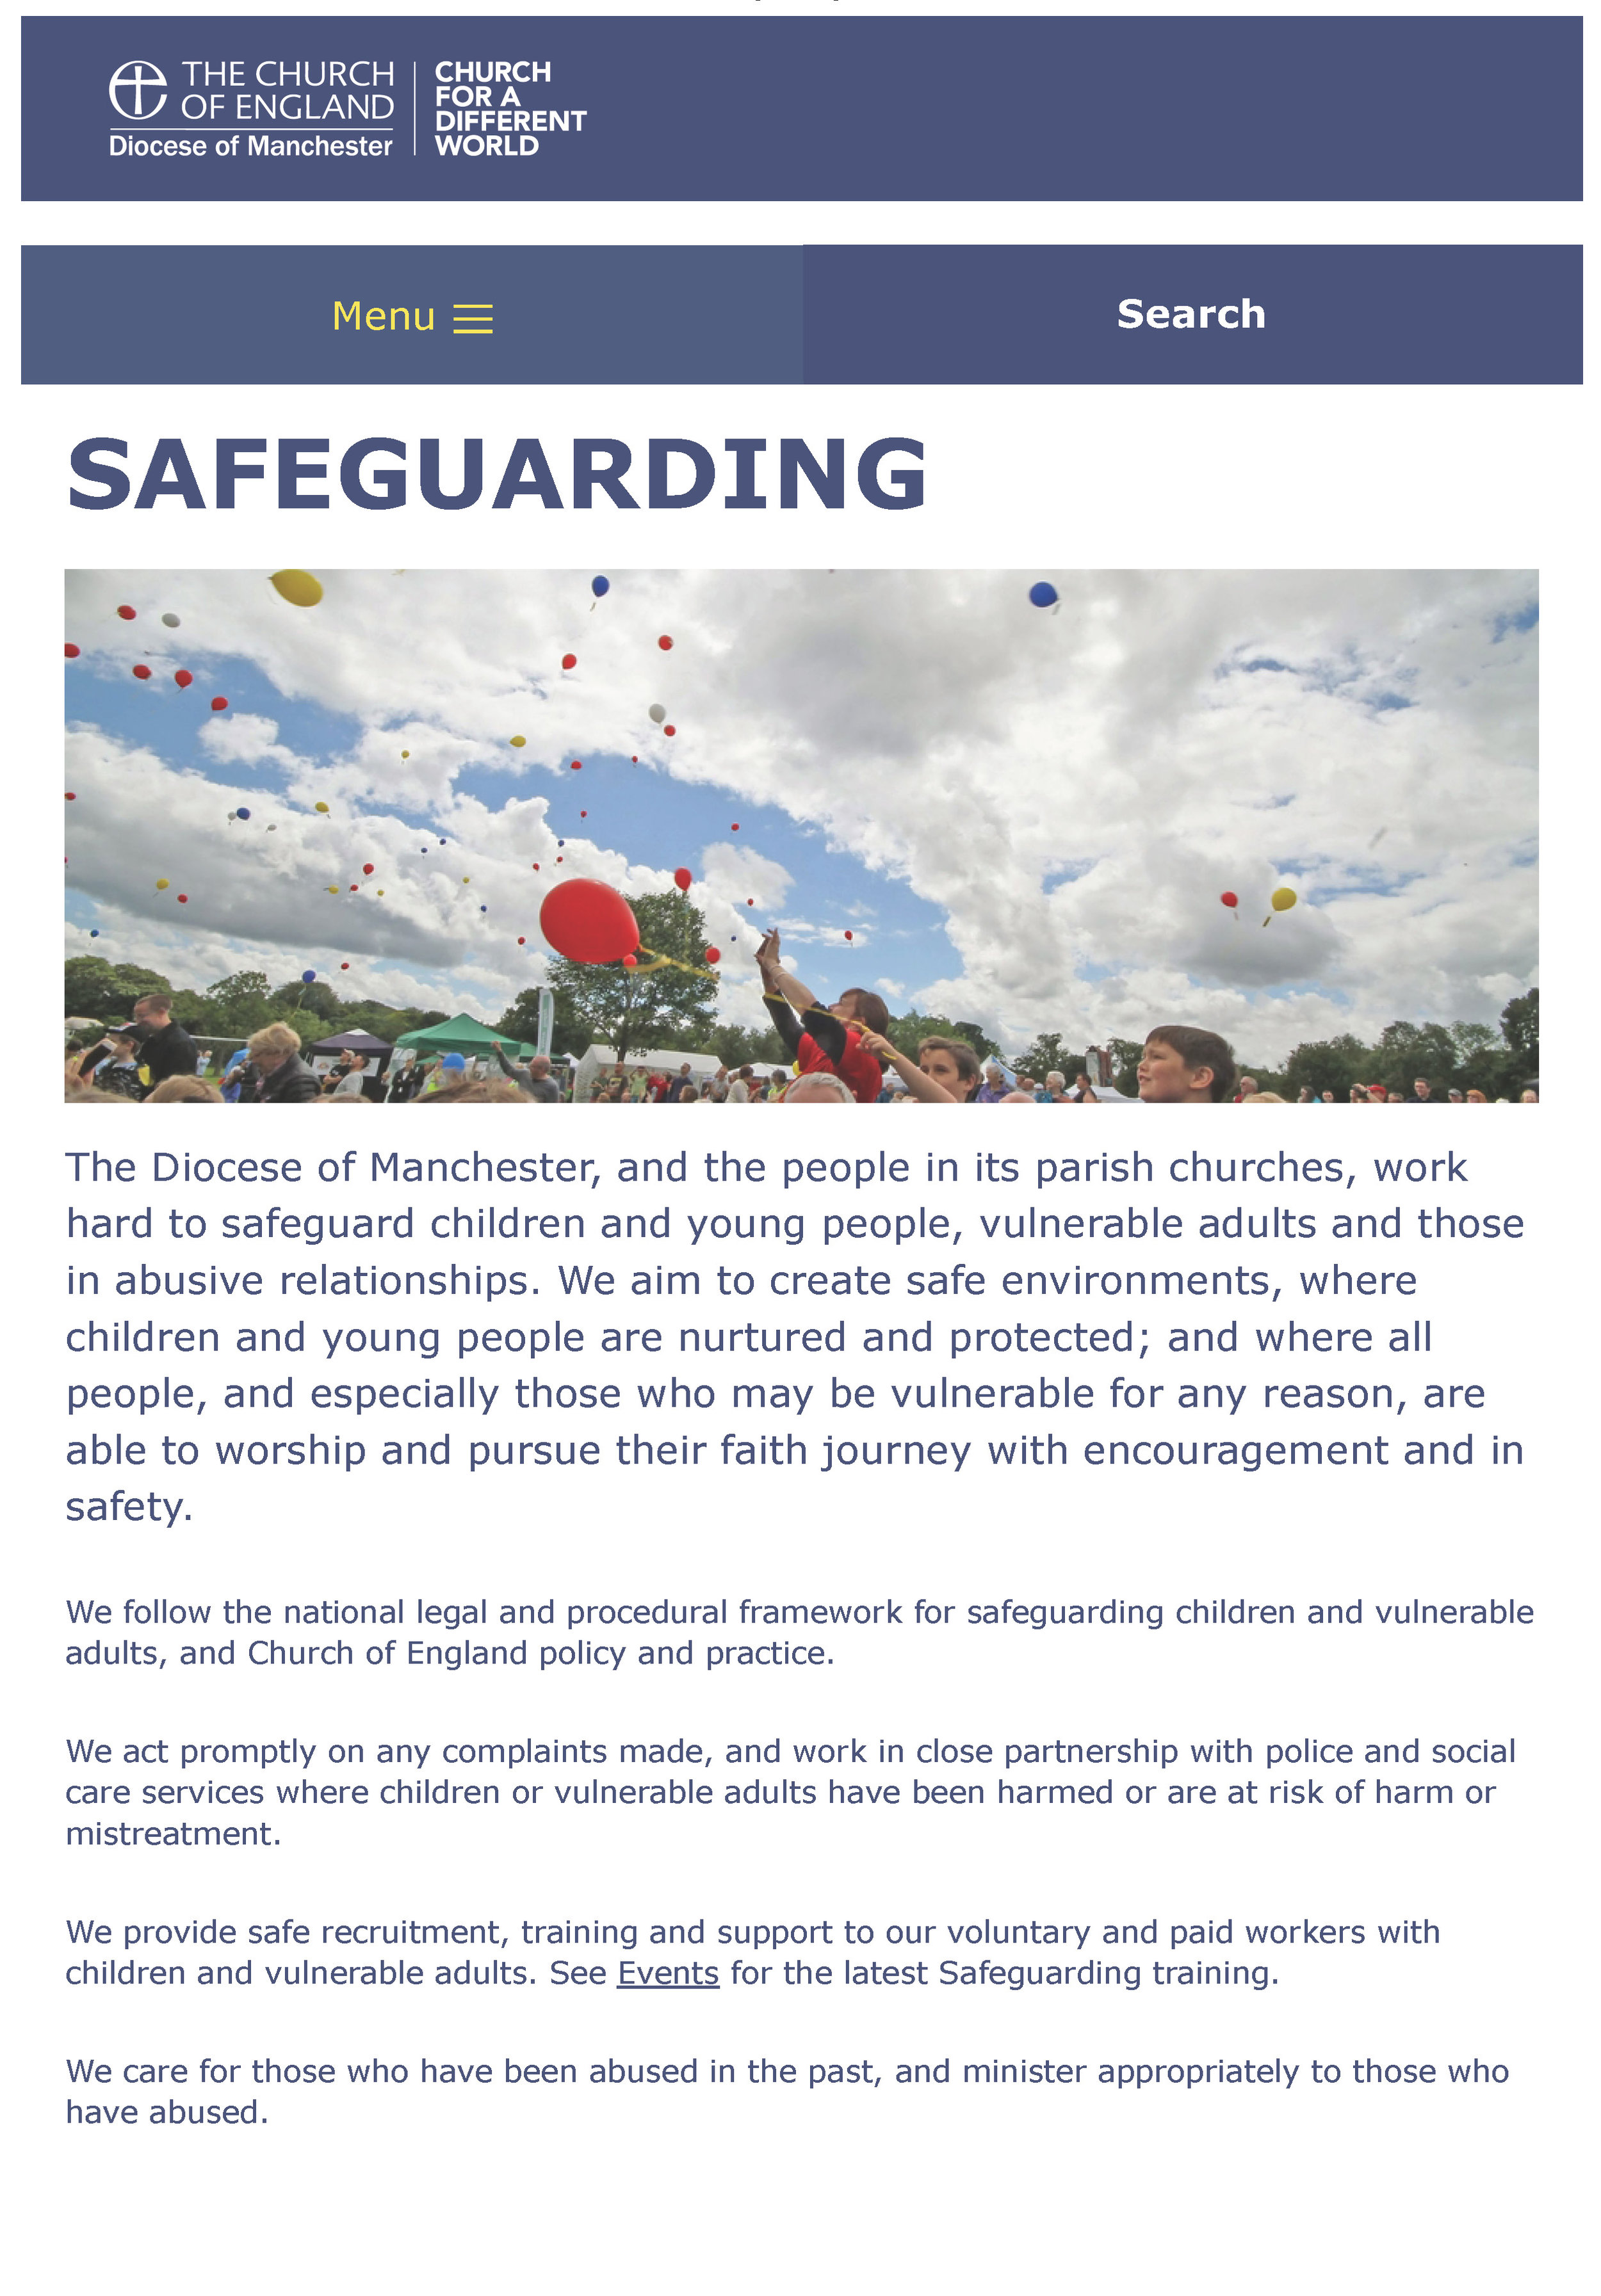 Diocese of Manchester - Safeguarding